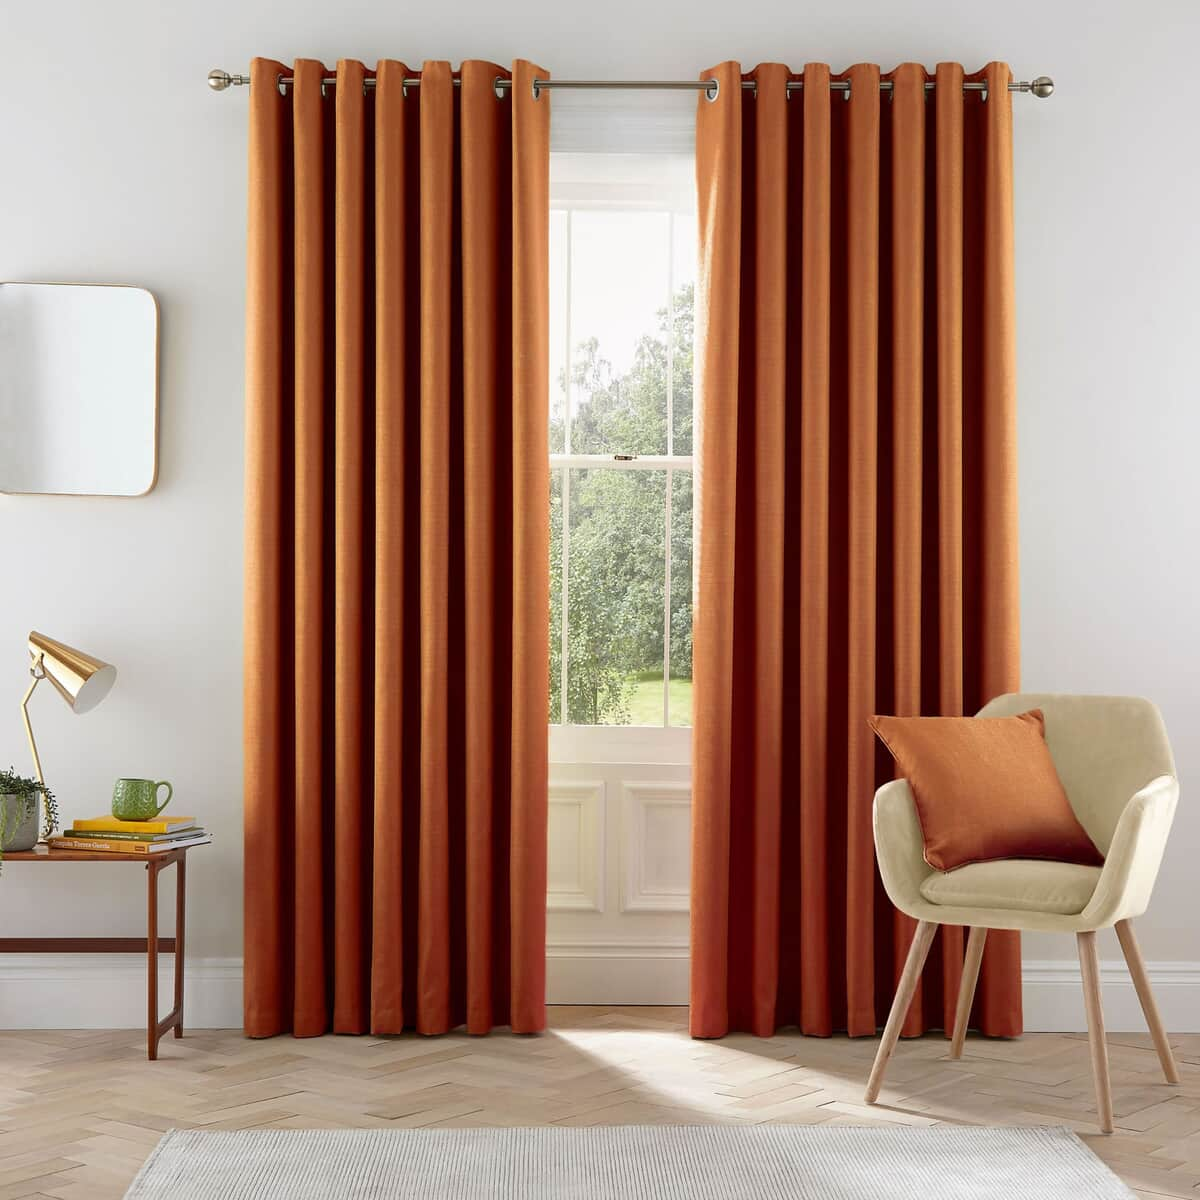 Helena Springfield Eden Ginger Curtains large